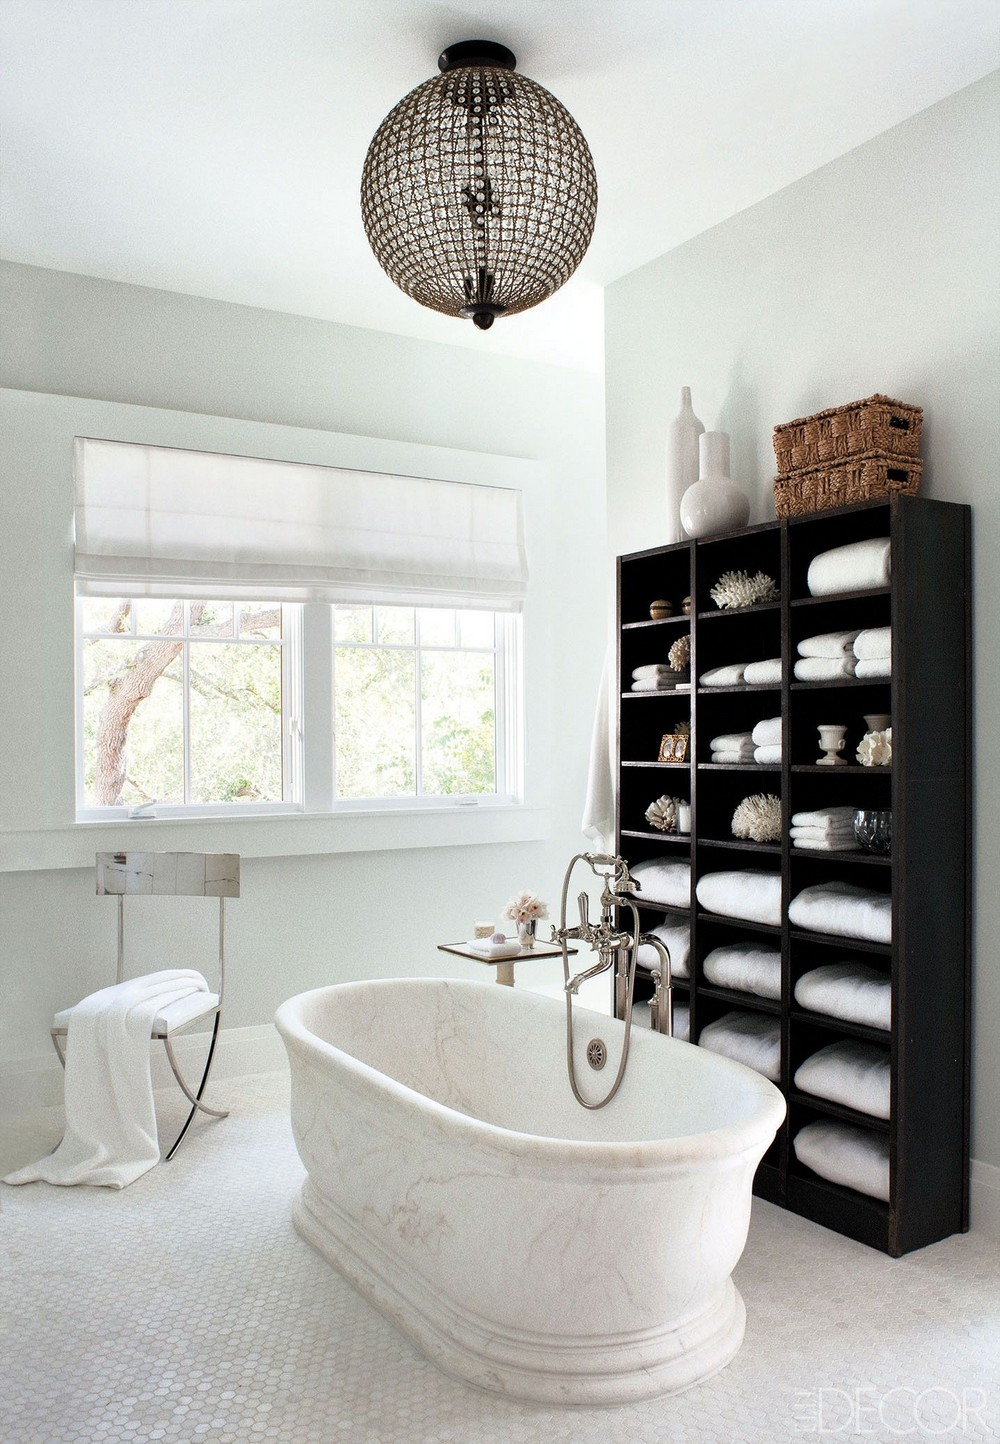 5 Bathroom Decor Ideas to Dramatically Upgrade Your Home Interiors 3